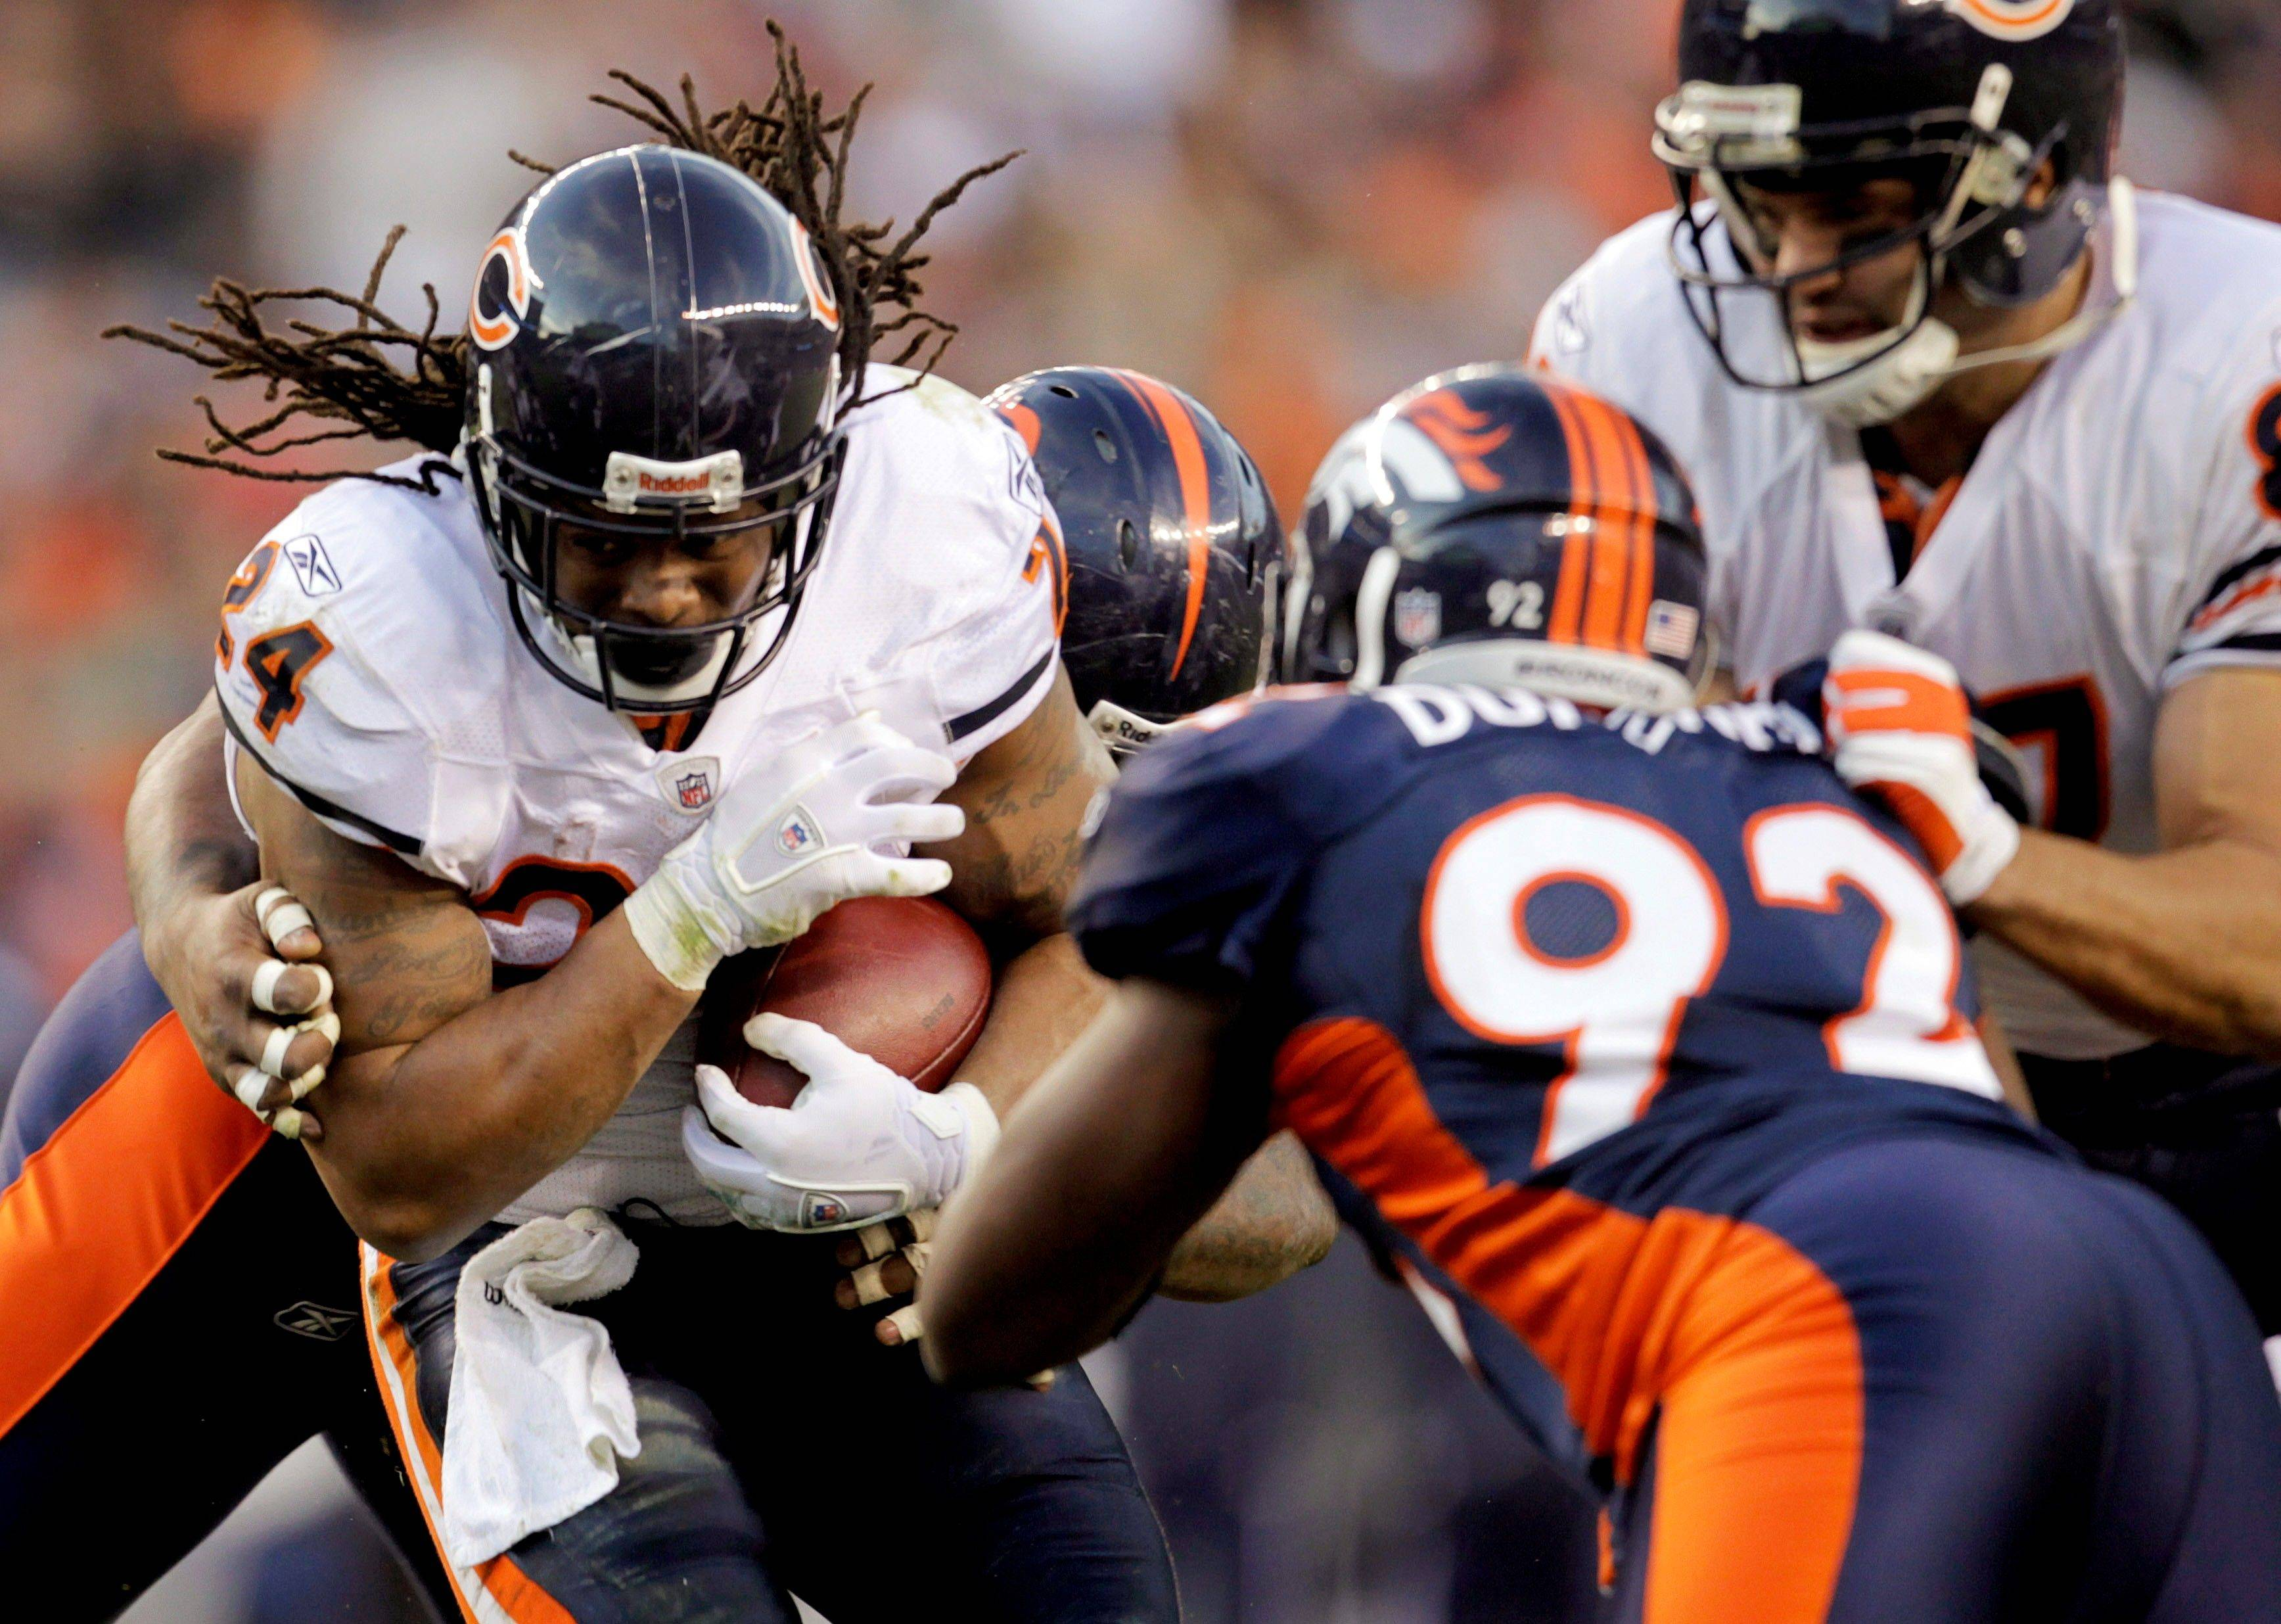 Chicago Bears running back Marion Barber (24) is hit by Denver Broncos defensive tackle Marcus Thomas, rear, and defensive end Elvis Dumervil (92) on his way to a first down in the third quarter.